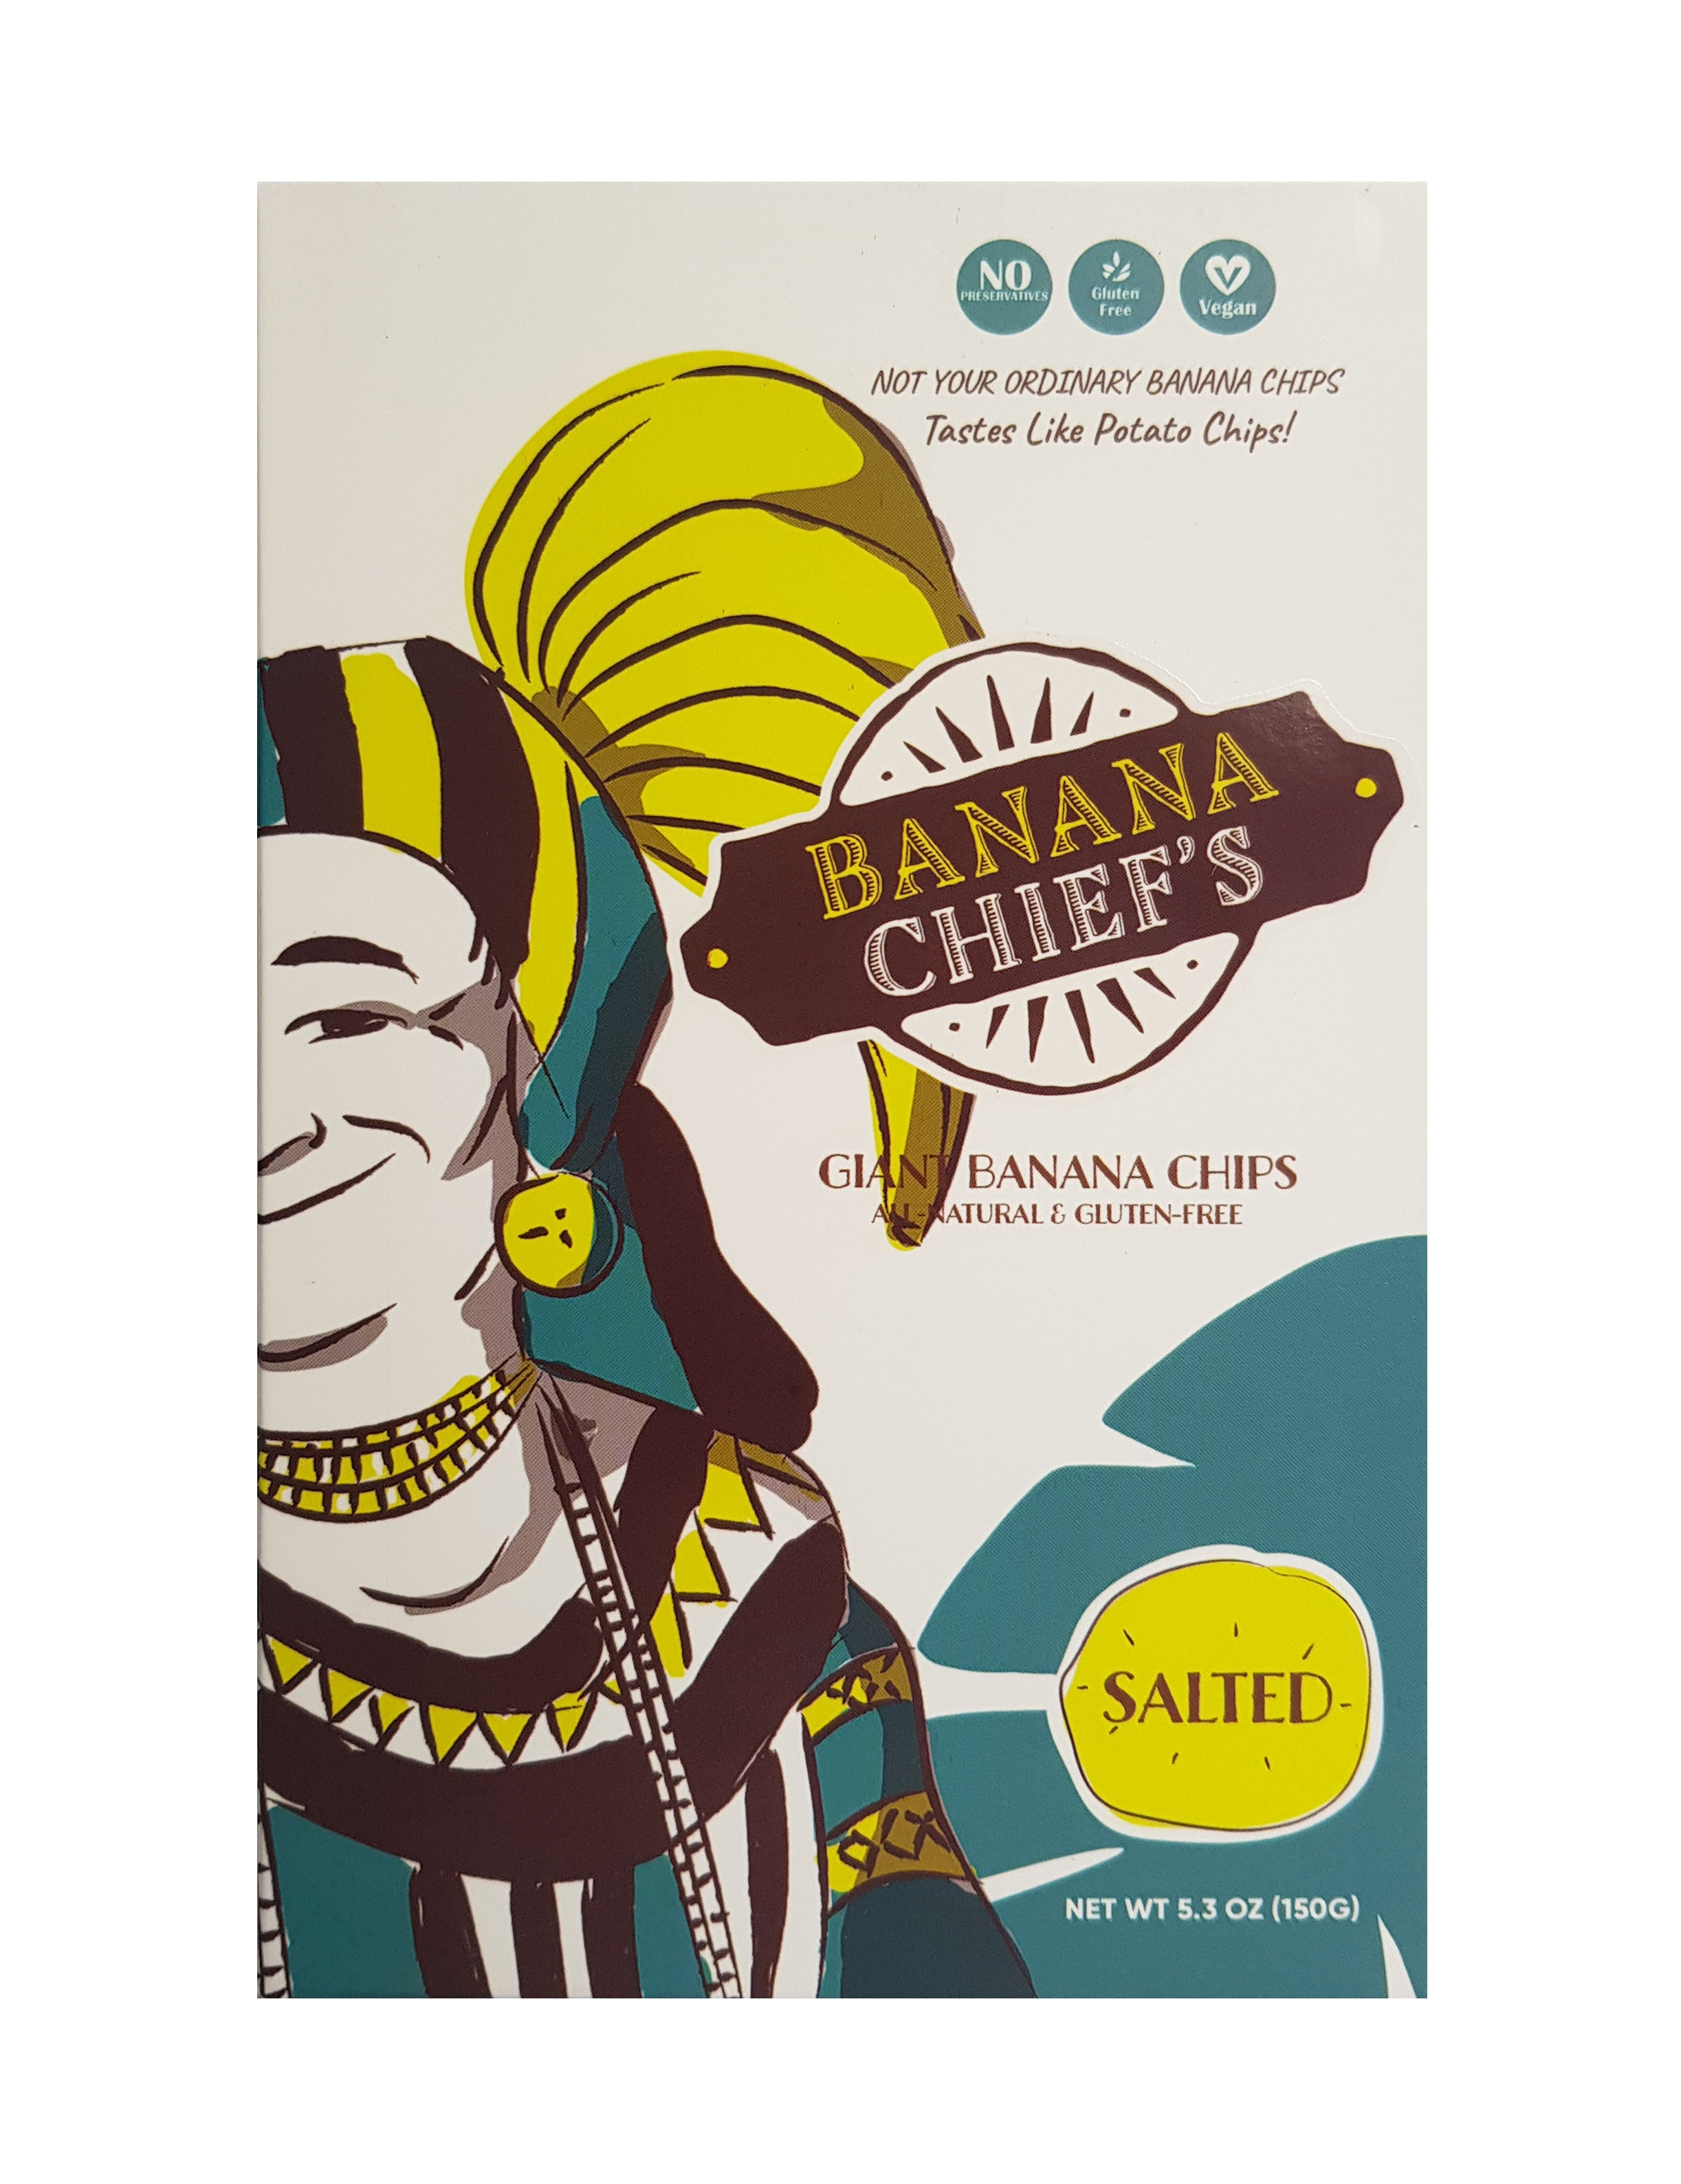 Banana Chief's Giant Banana Chips - Salted (150 grams)